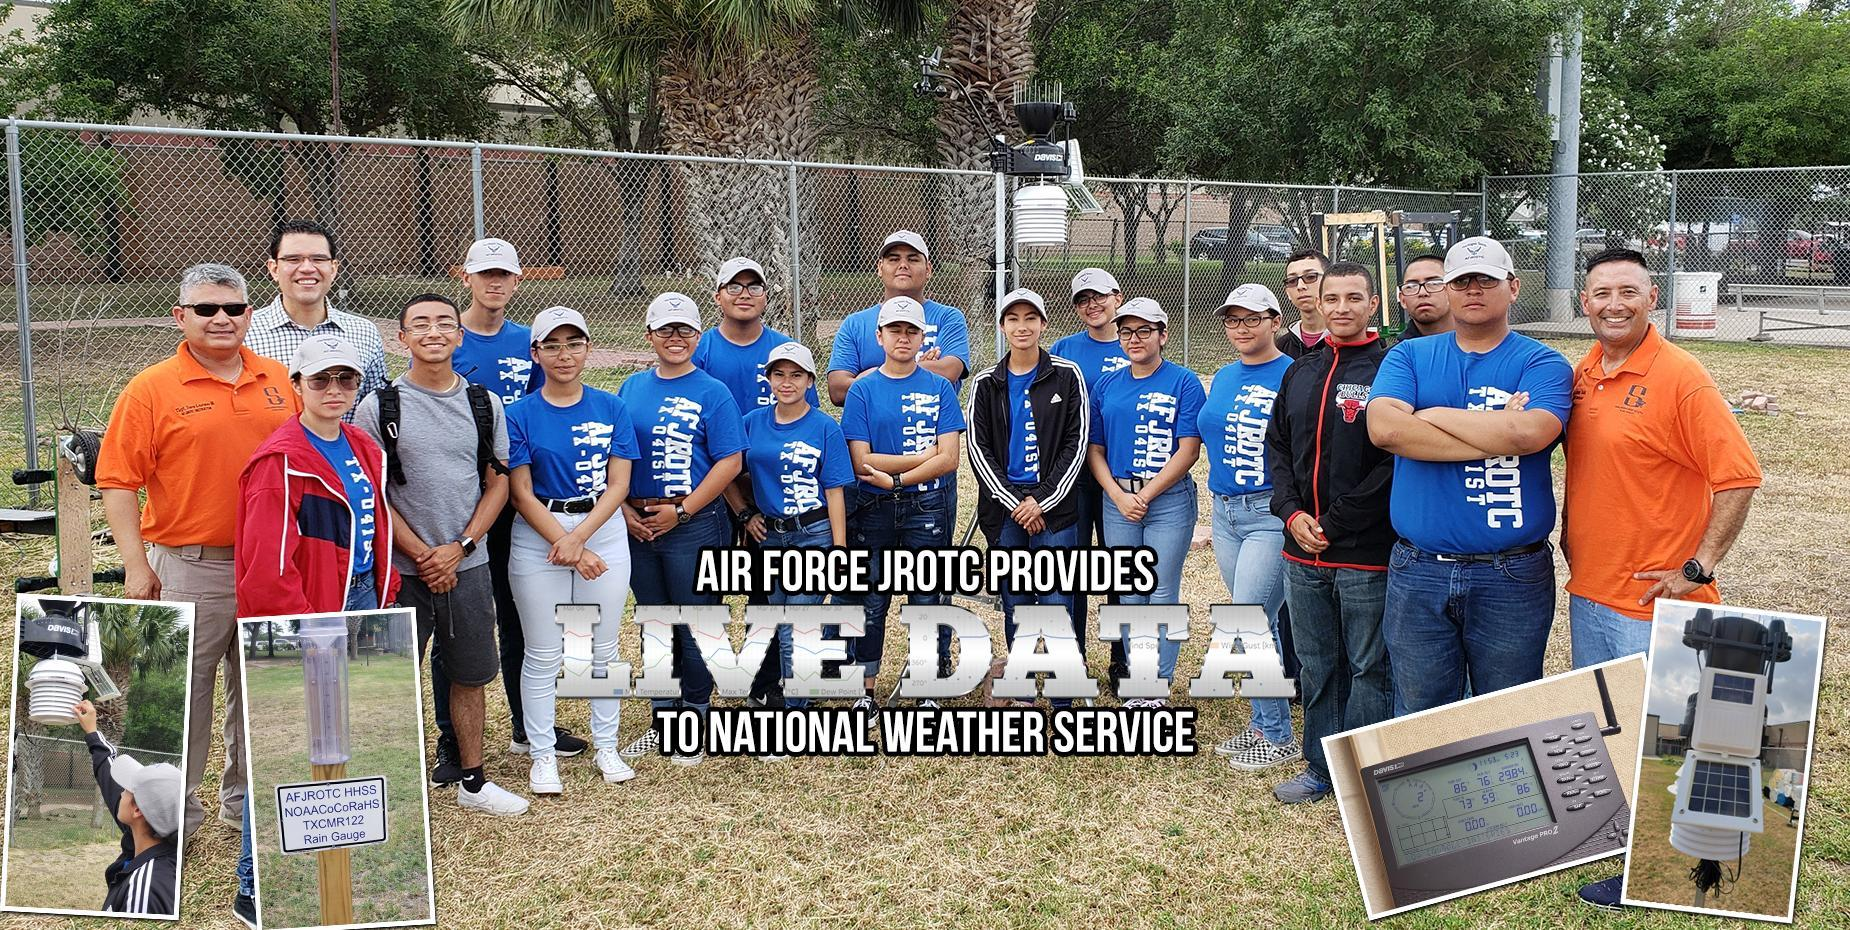 Air Force JROTC Provides Live Data to National Weather Service